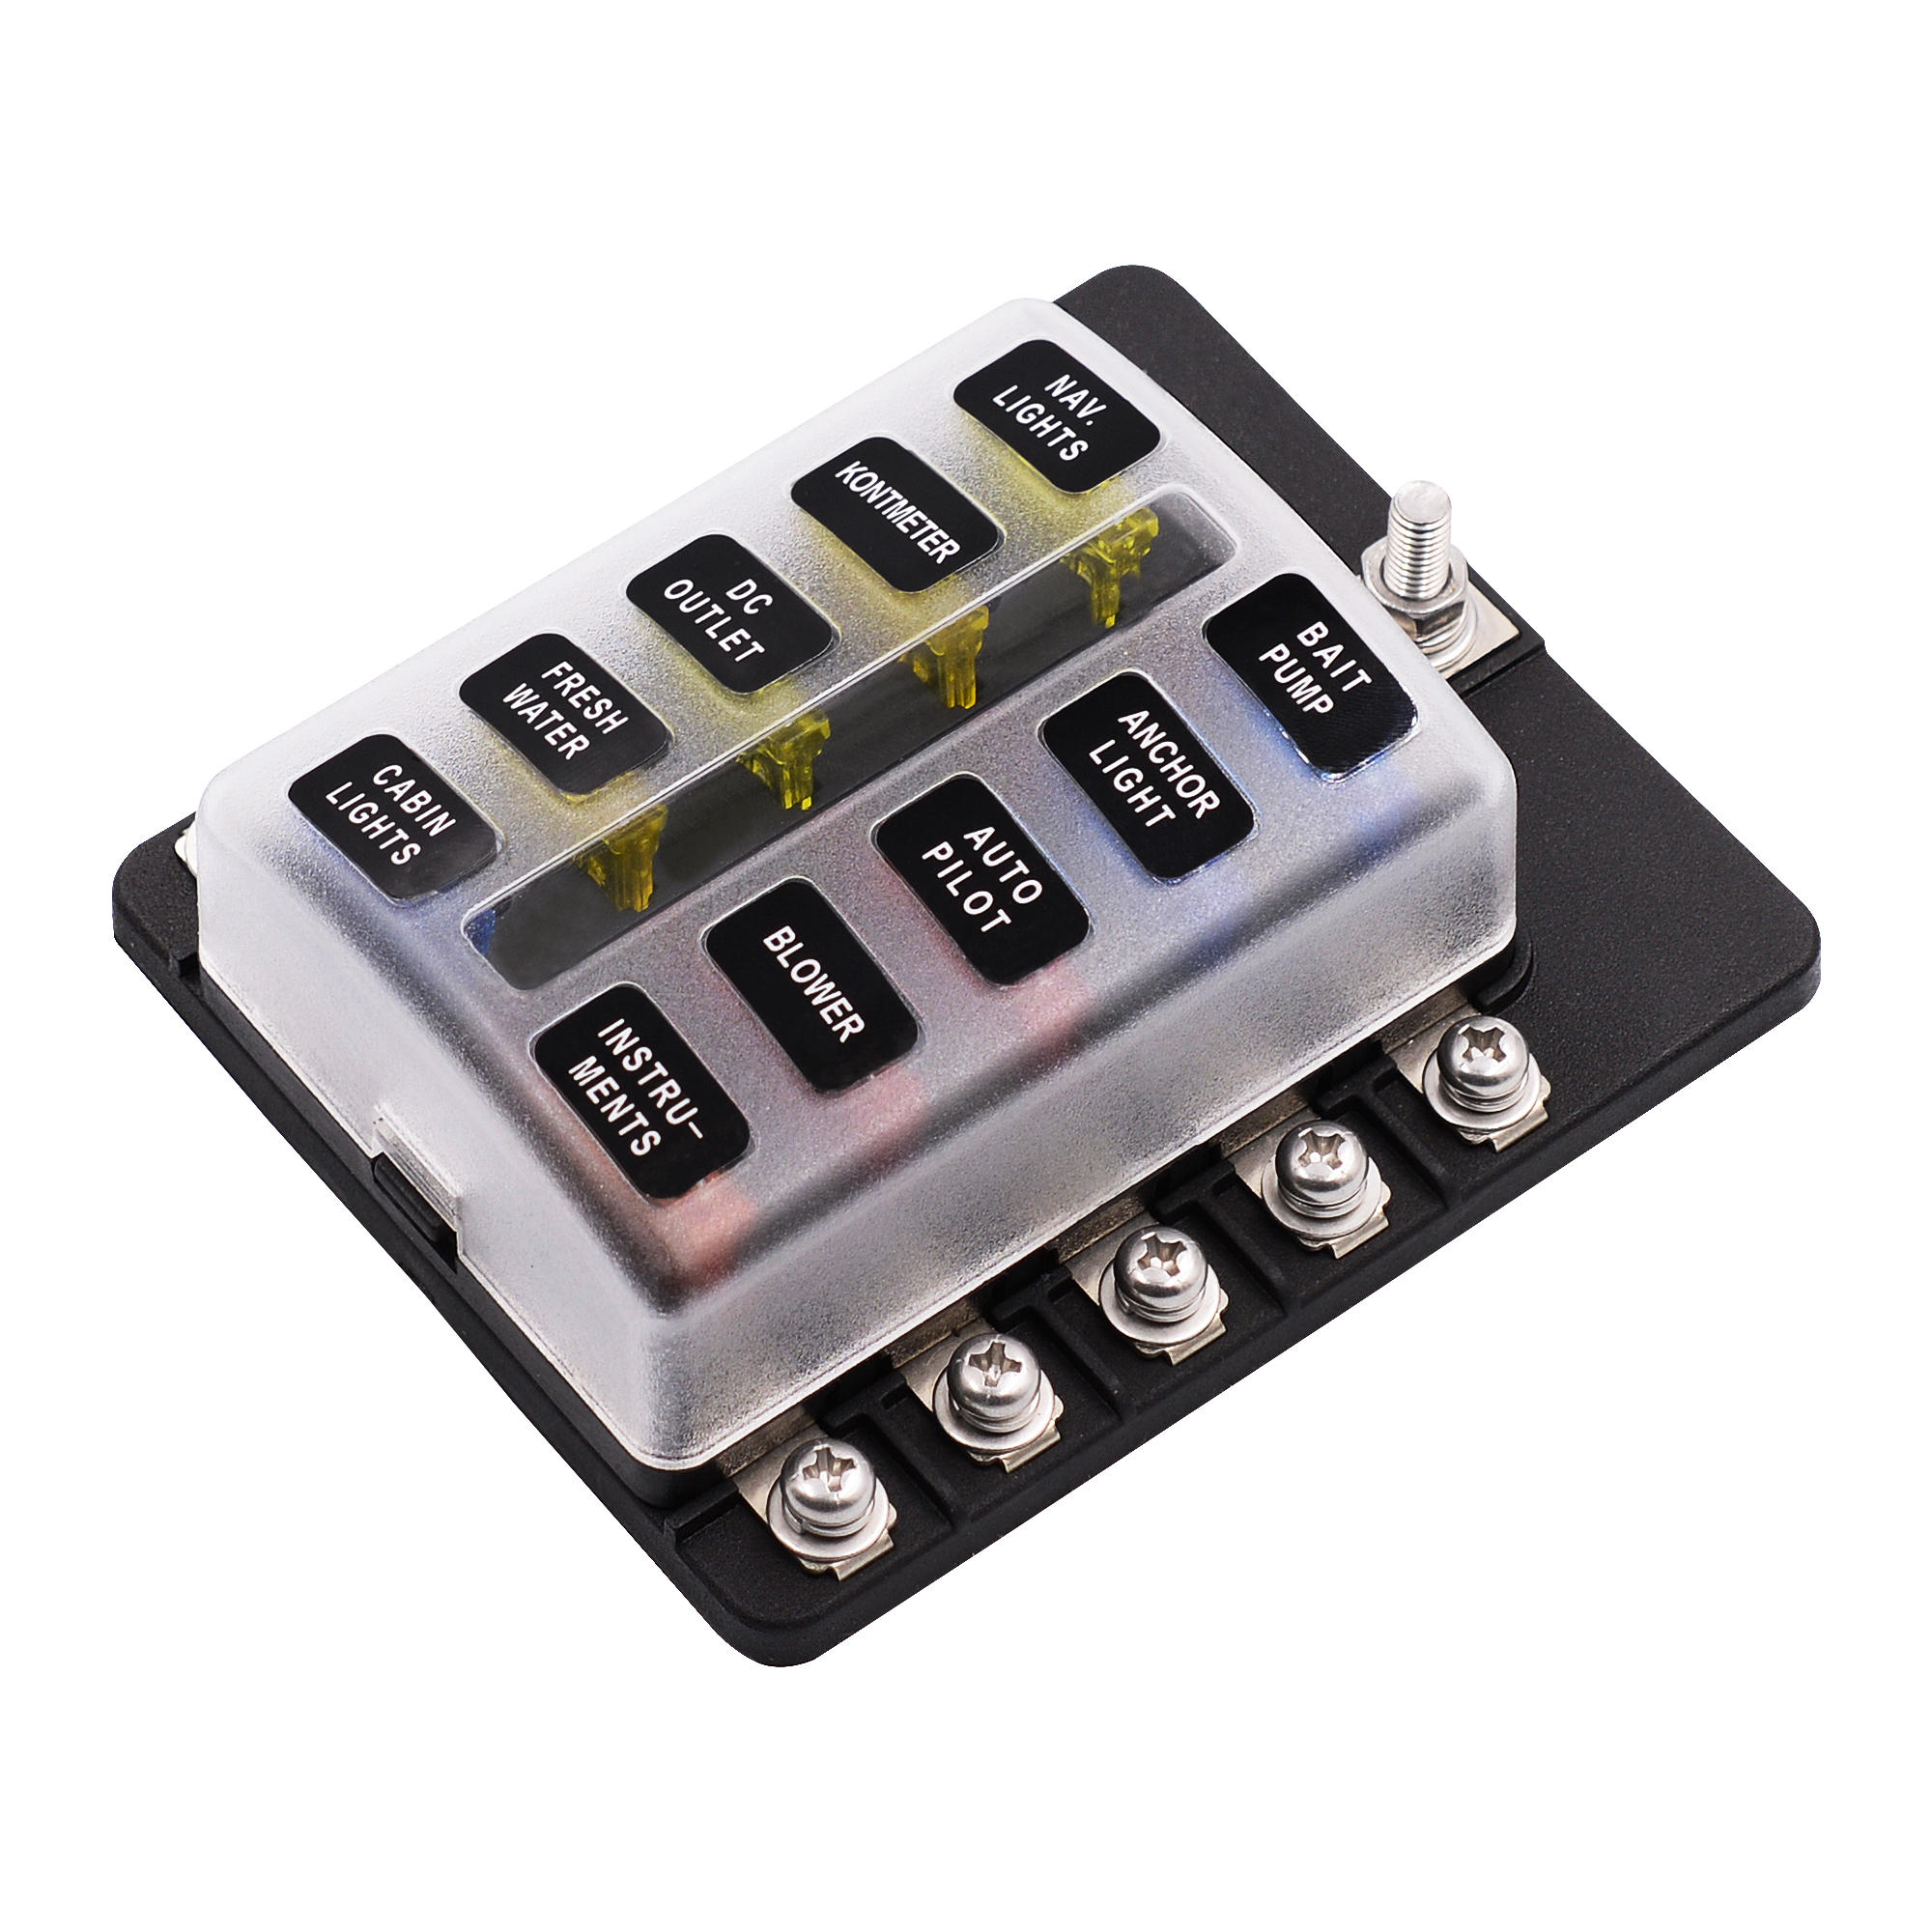 imars™ 10 way fuse box 12v 32v circuit standard blade block holder kit car caravan Smart Car Speaker